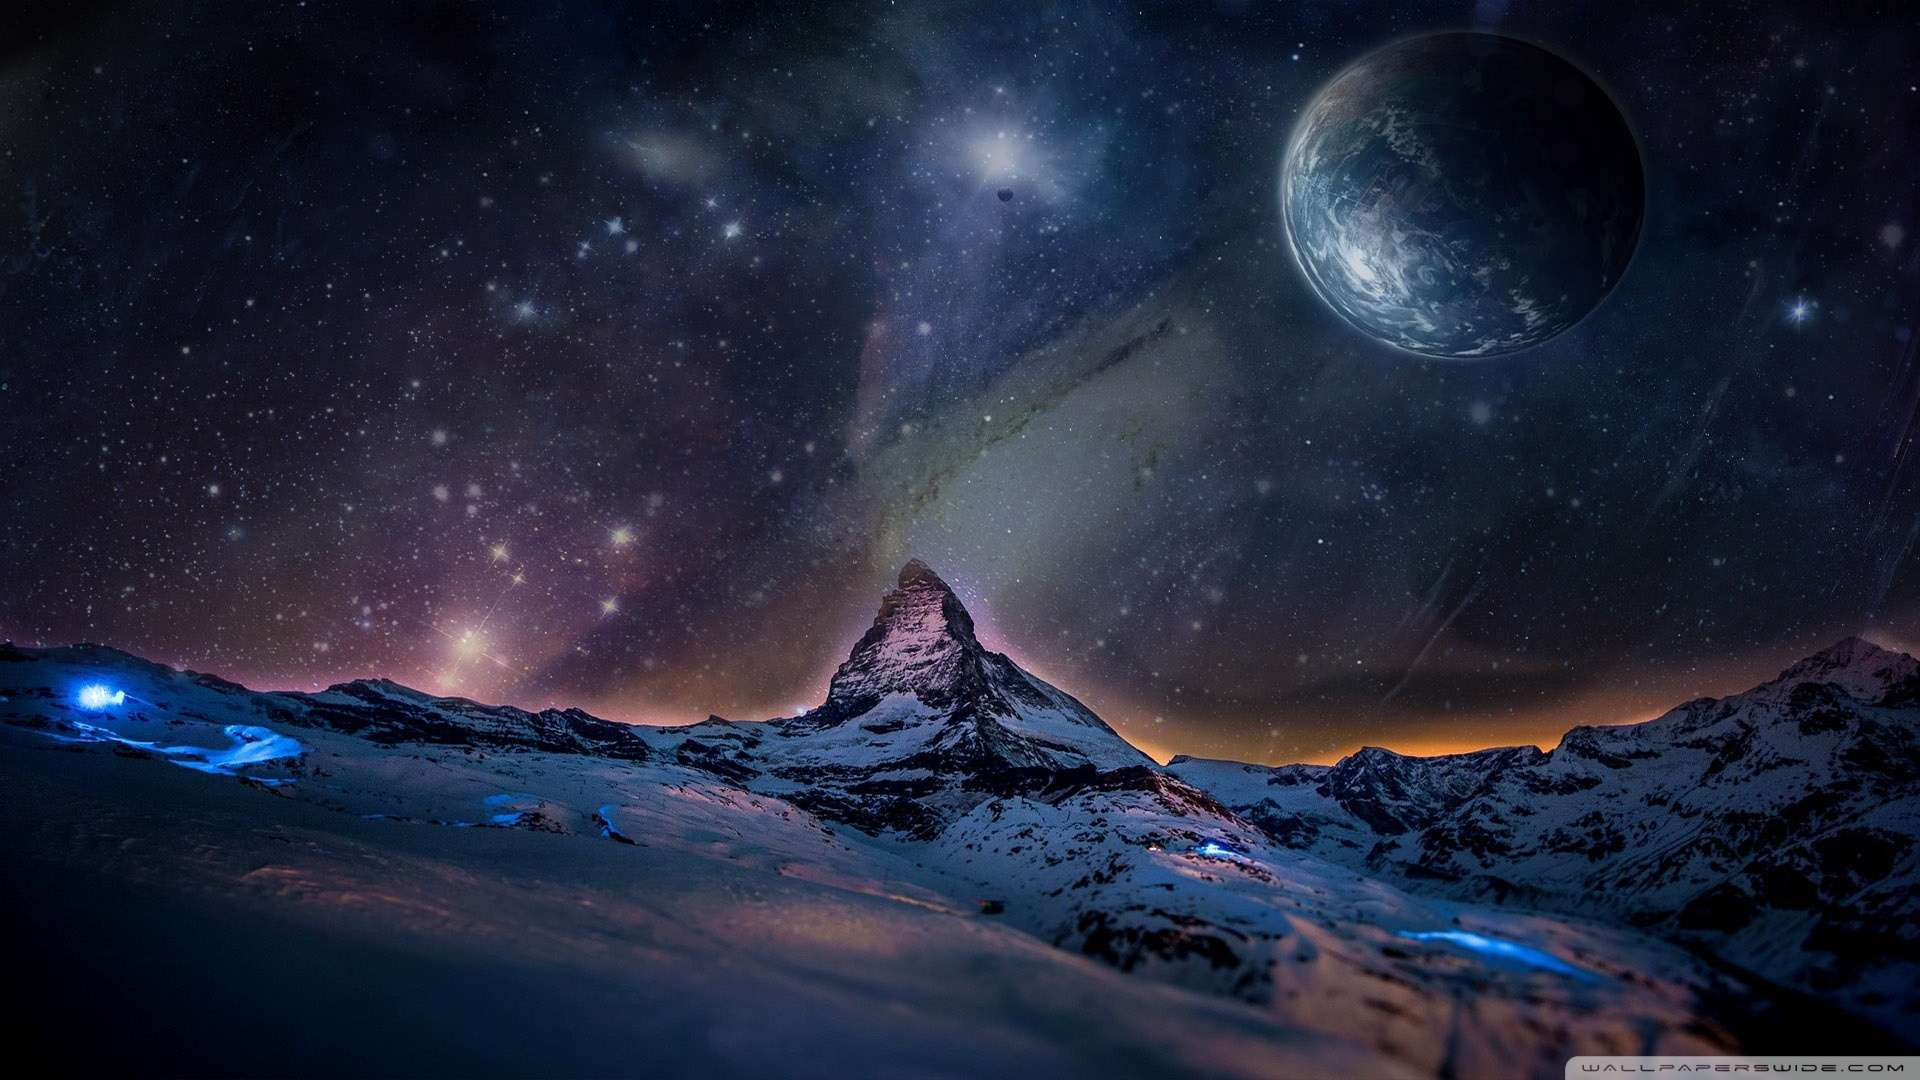 Space Hd Wallpaper Posted By Zoey Thompson